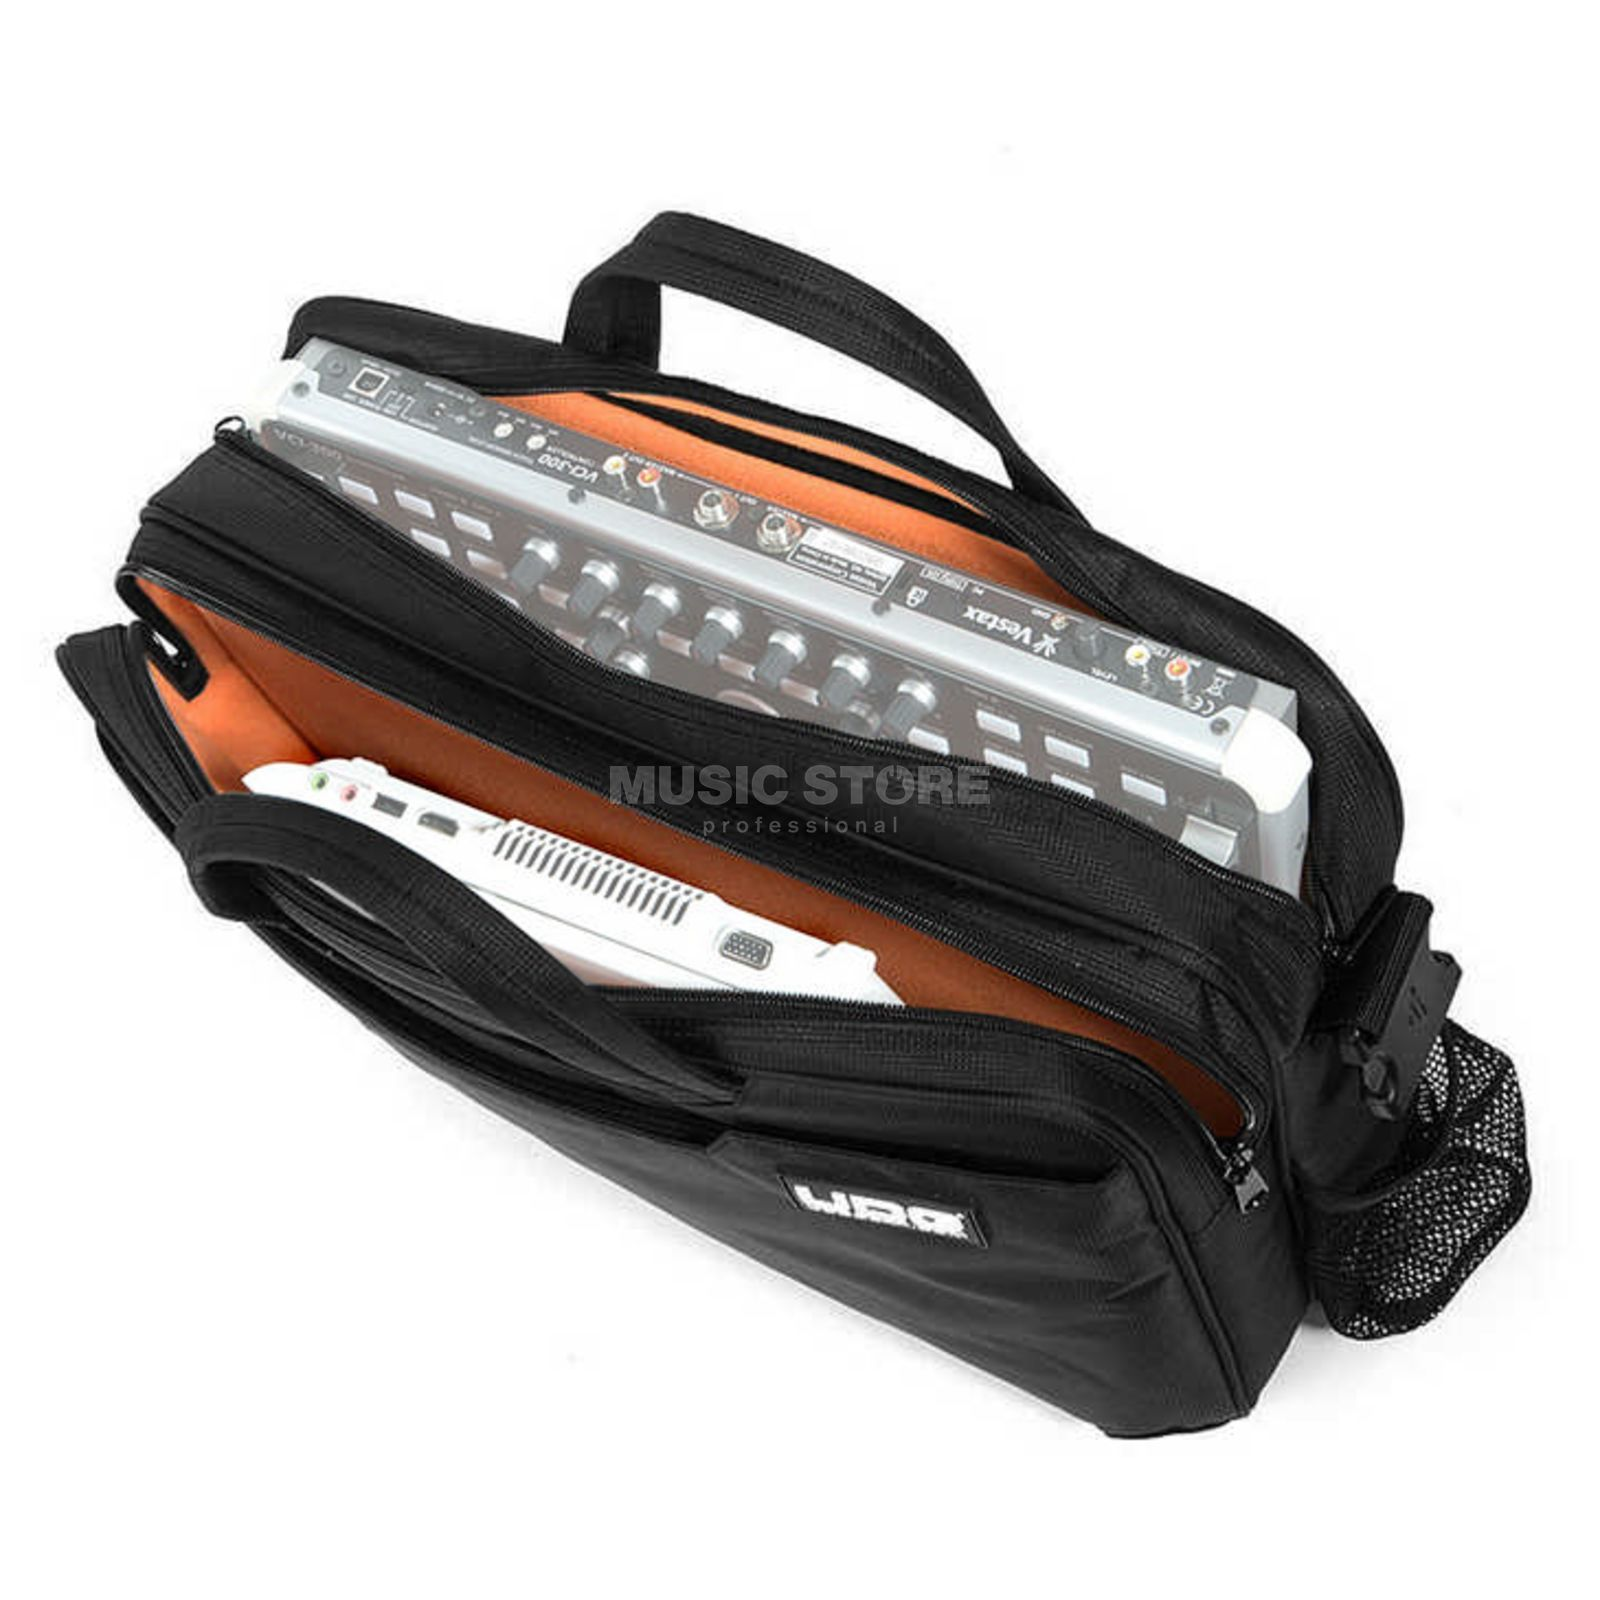 UDG MIDI Controller Bag Black/Orange Inside U9011 Zdjęcie produktu